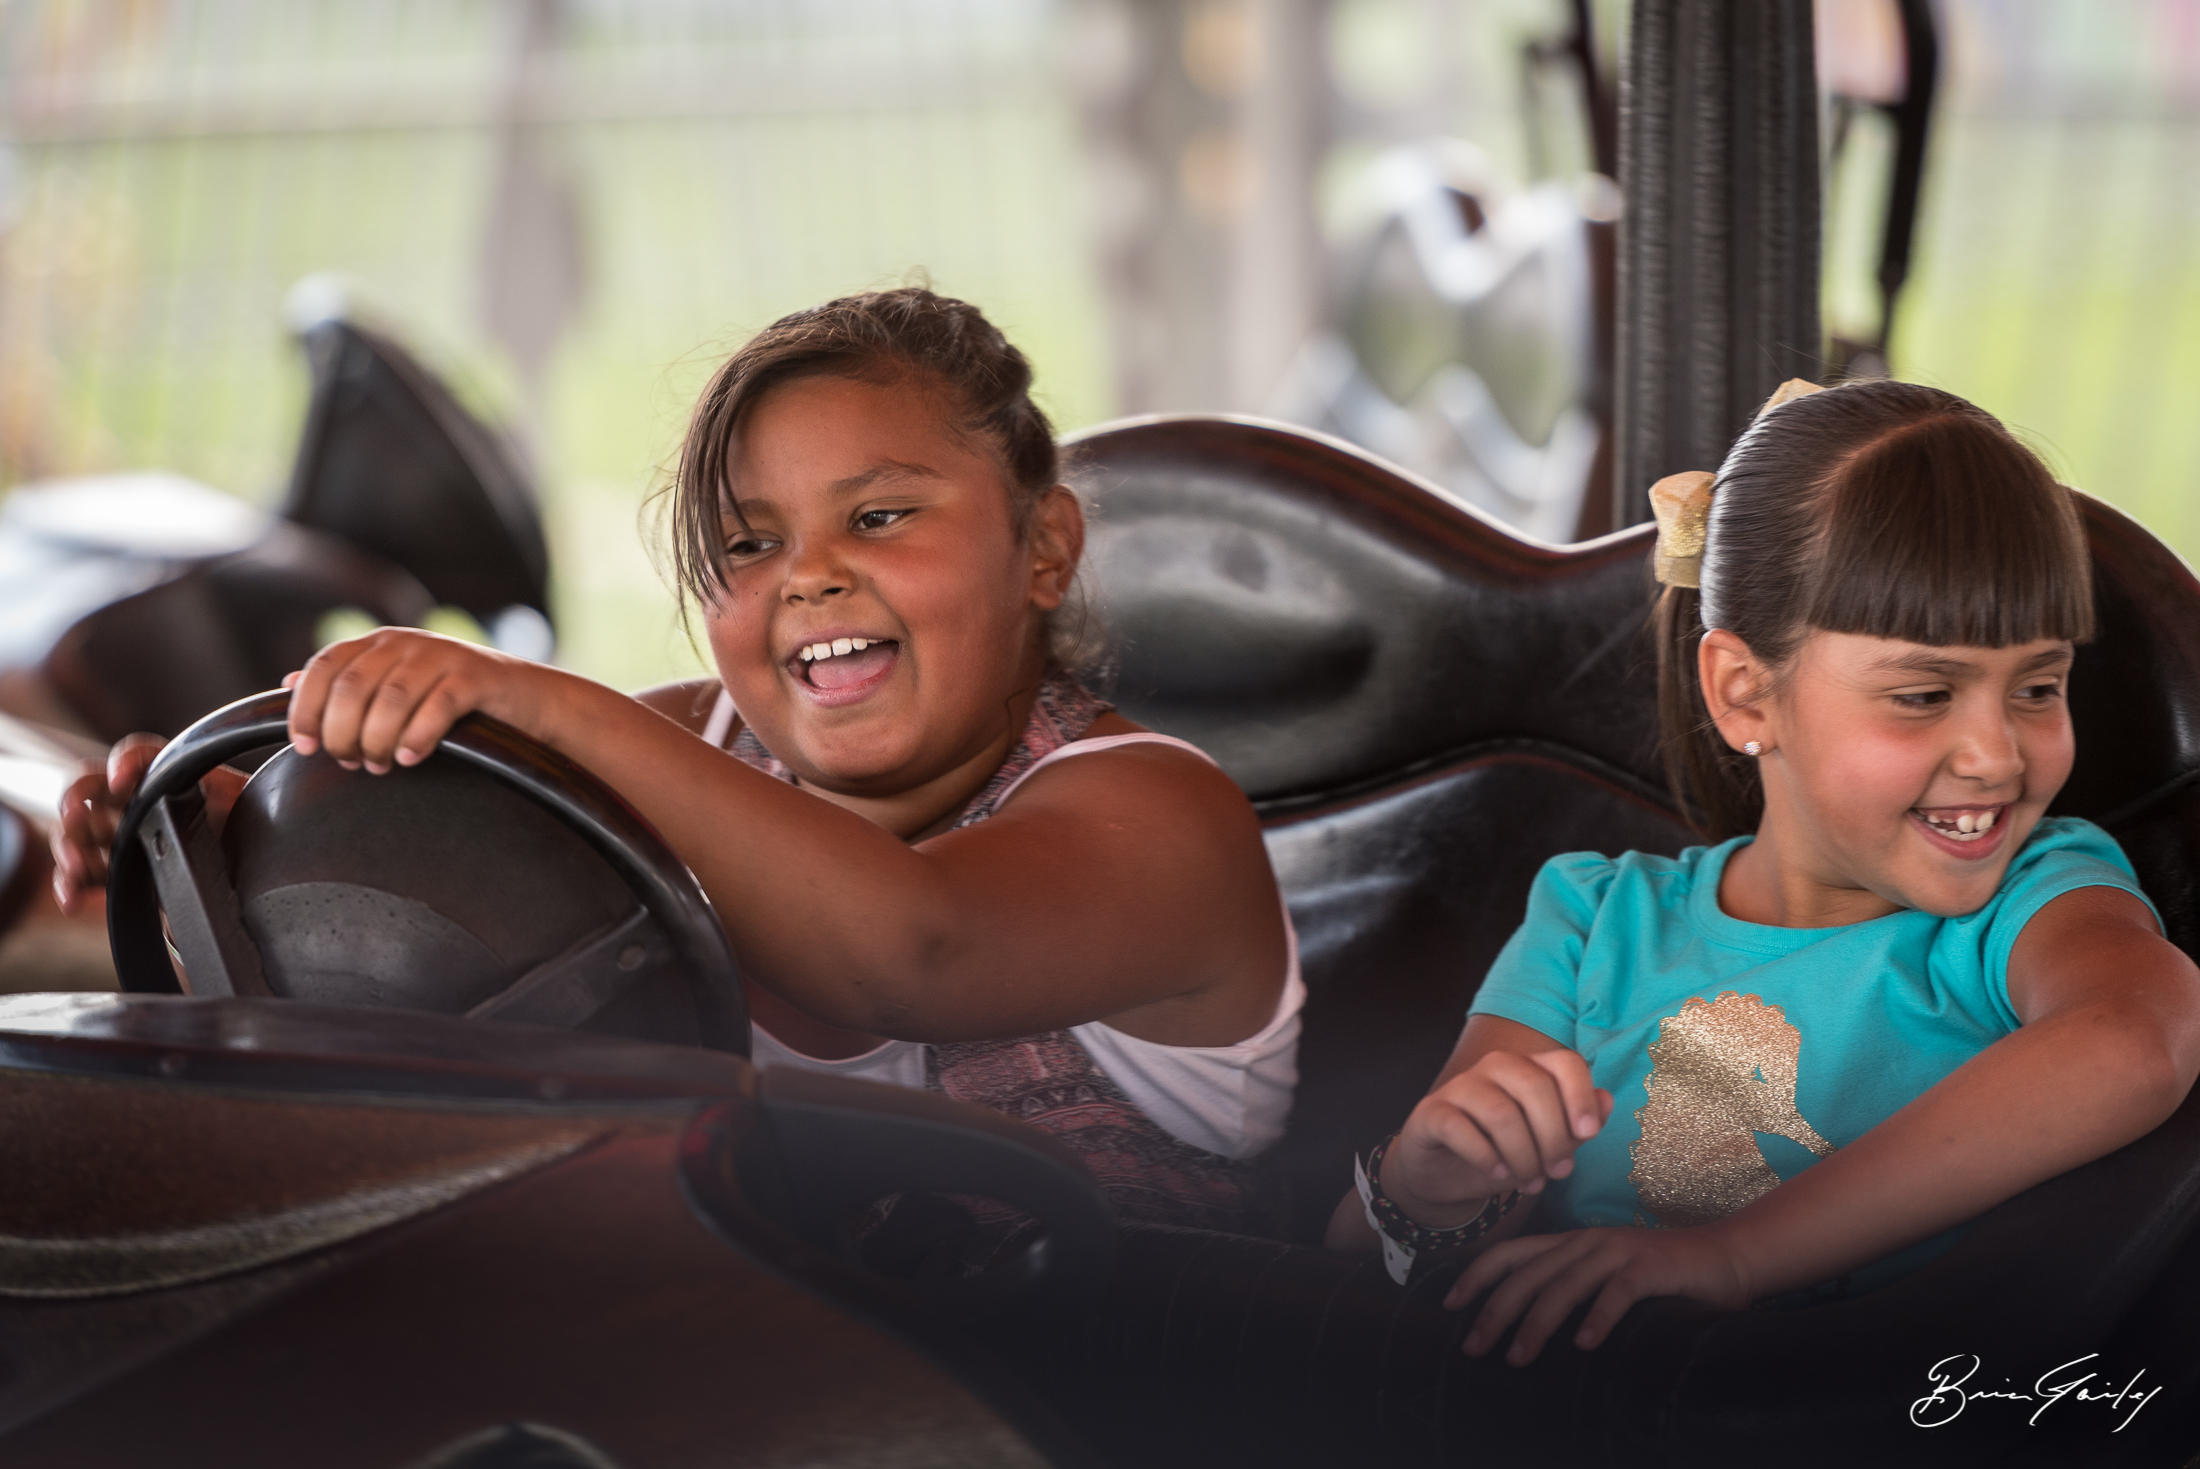 A pair of young ladies laugh while on the bumper cars.  Image:  Brian Gailey  Tulelake Butte Valley Fair 2017